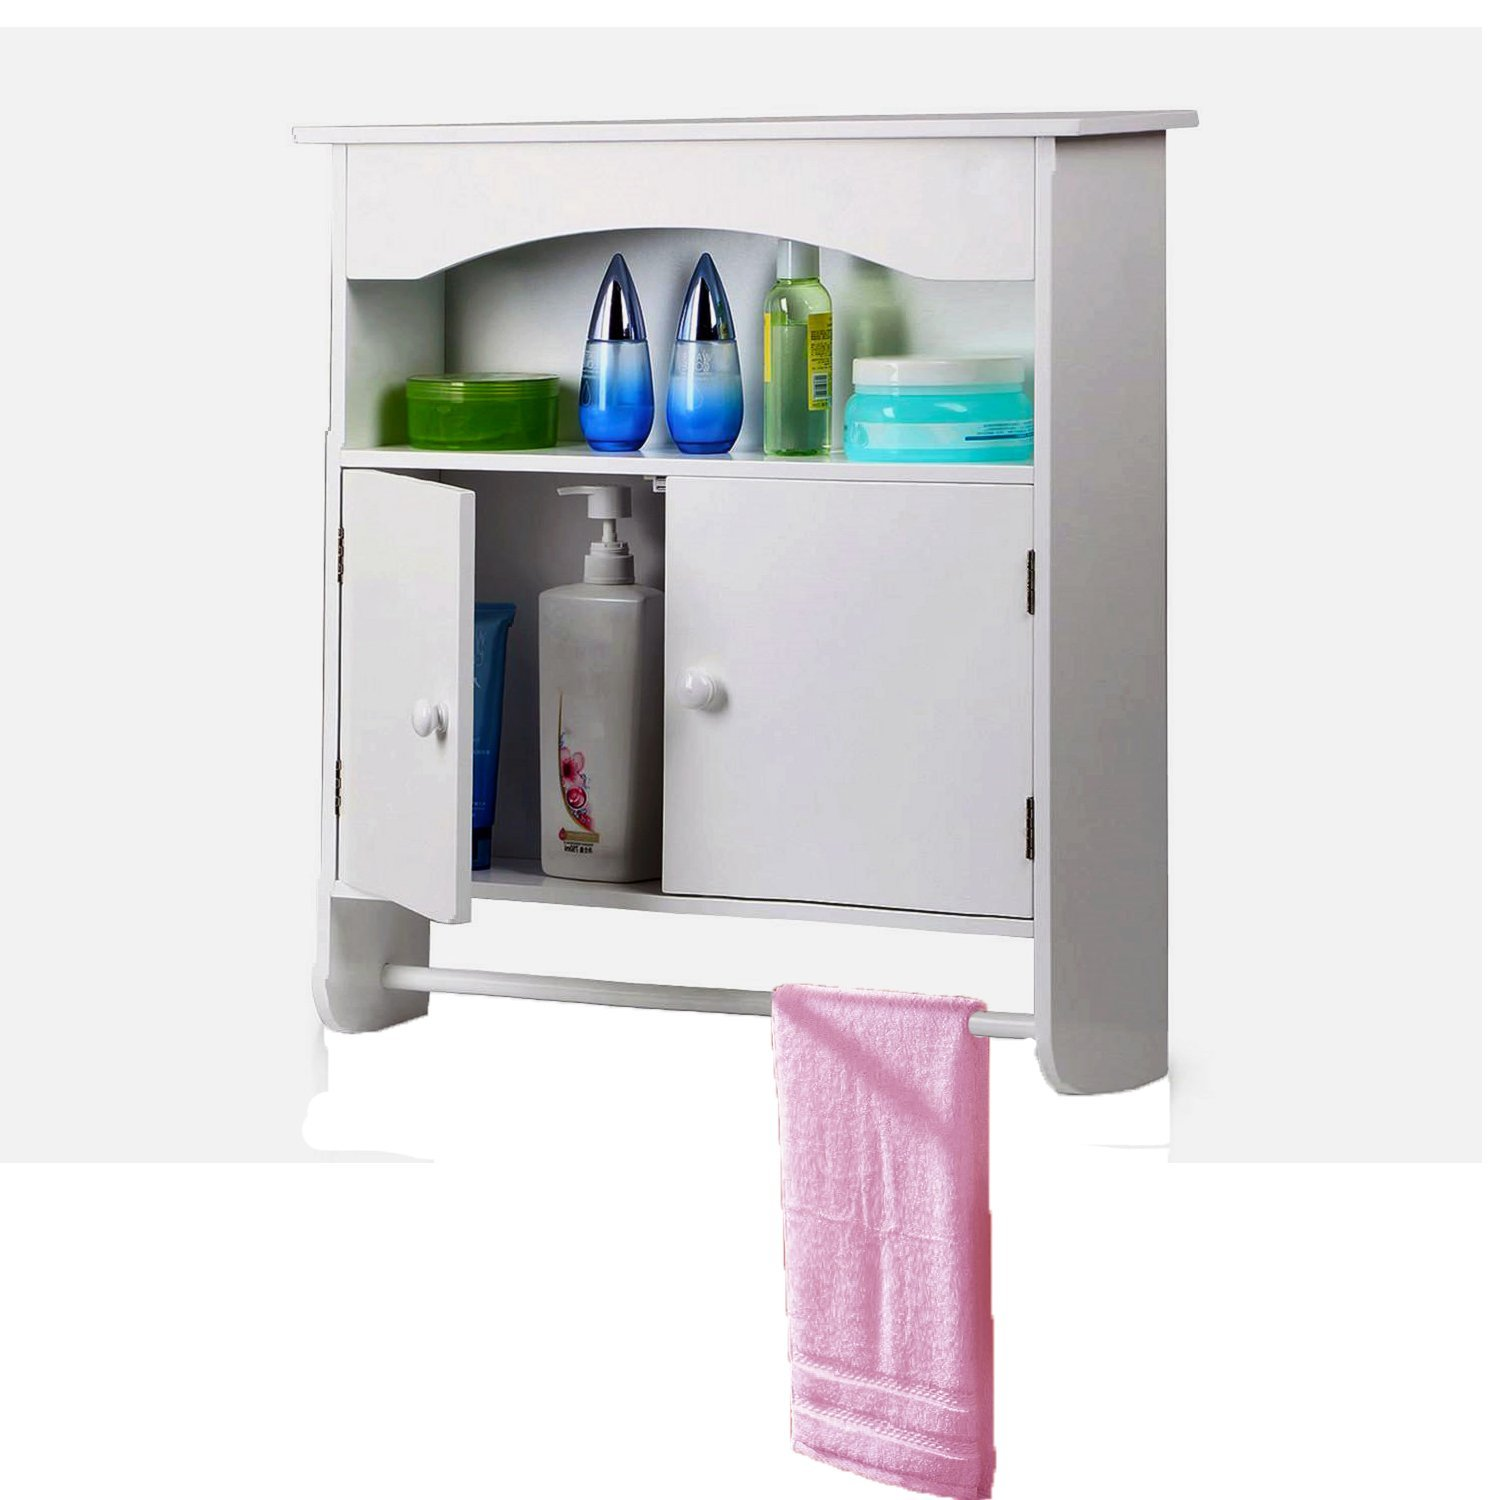 Yaheetech White Wooden Bathroom Wall Cabinet Toilet Medicine Storage Organiser Cupboard 2 Door with Bar Shelf Unit